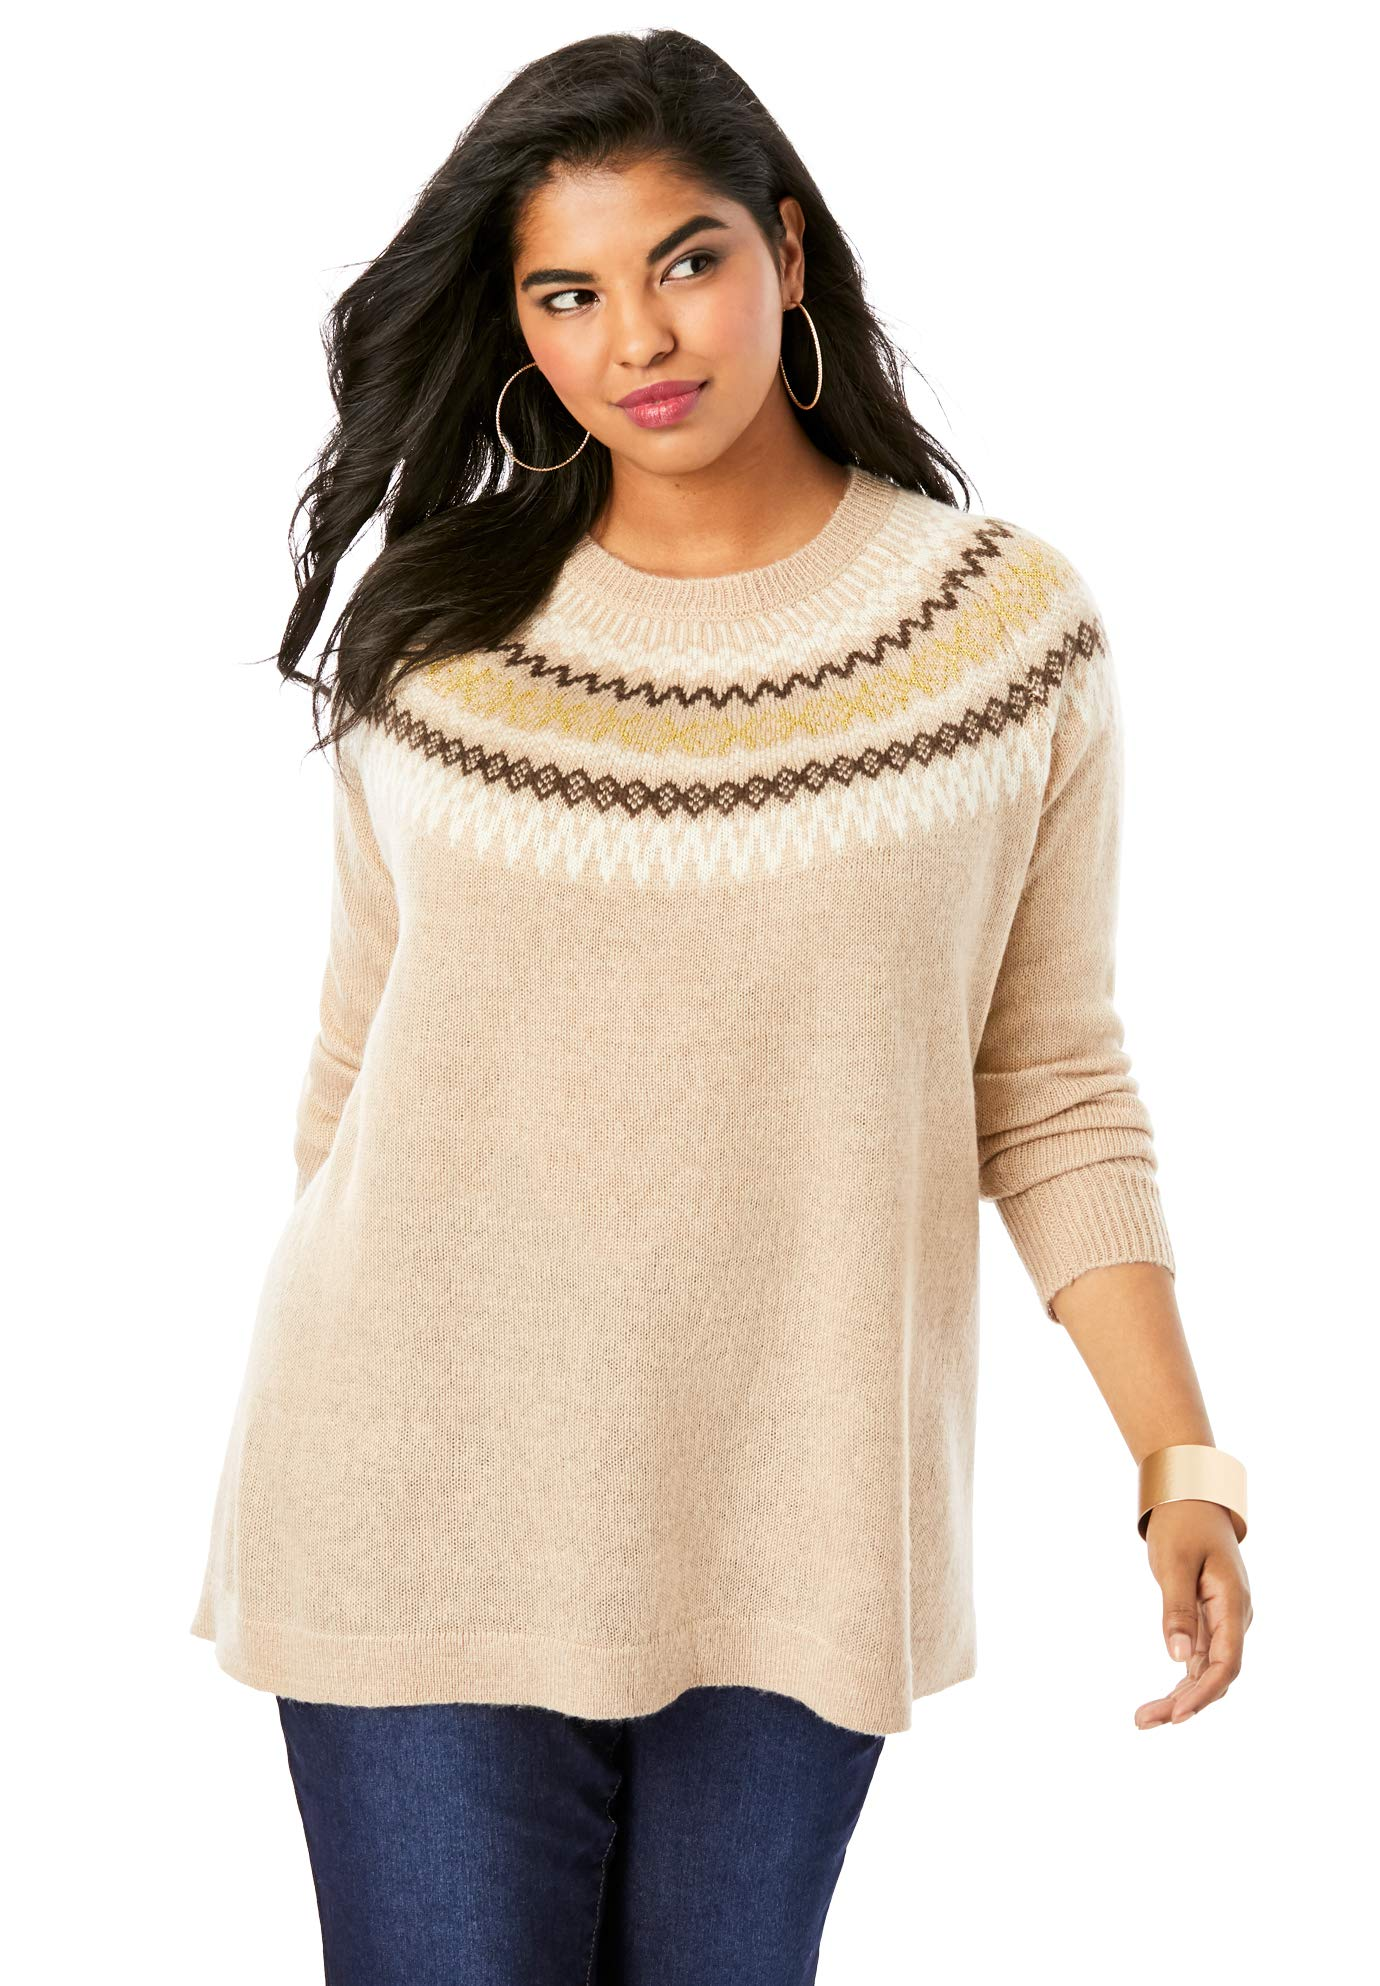 Roamans Women's Plus Size Fair Isle Pullover Sweater - Beige Classic Fair Isle, 26/28 by Roamans